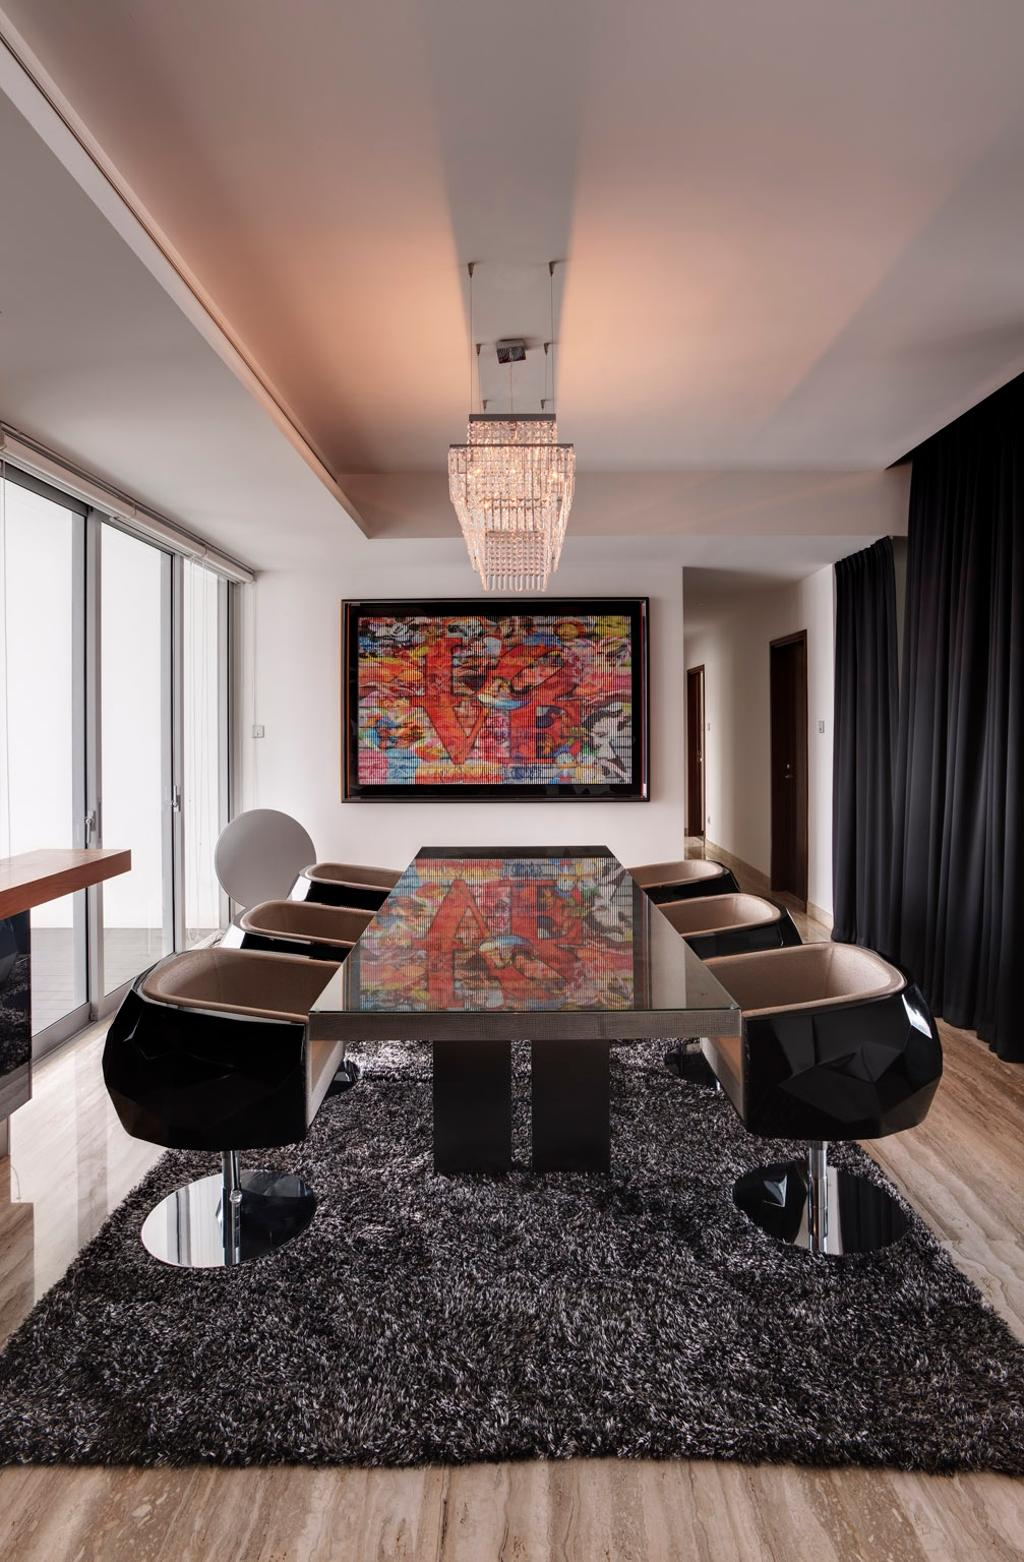 Modern, Condo, Dining Room, Orchard Residence, Interior Designer, Hue Concept Interior Design, Curtains, False Ceiling, Hanging Light, Pendant Light, Dining Table, Table, Rug, Chair, Full Length Windows, Parquet, Painting, Muted Tones, Furniture, Indoors, Room, Interior Design, Art